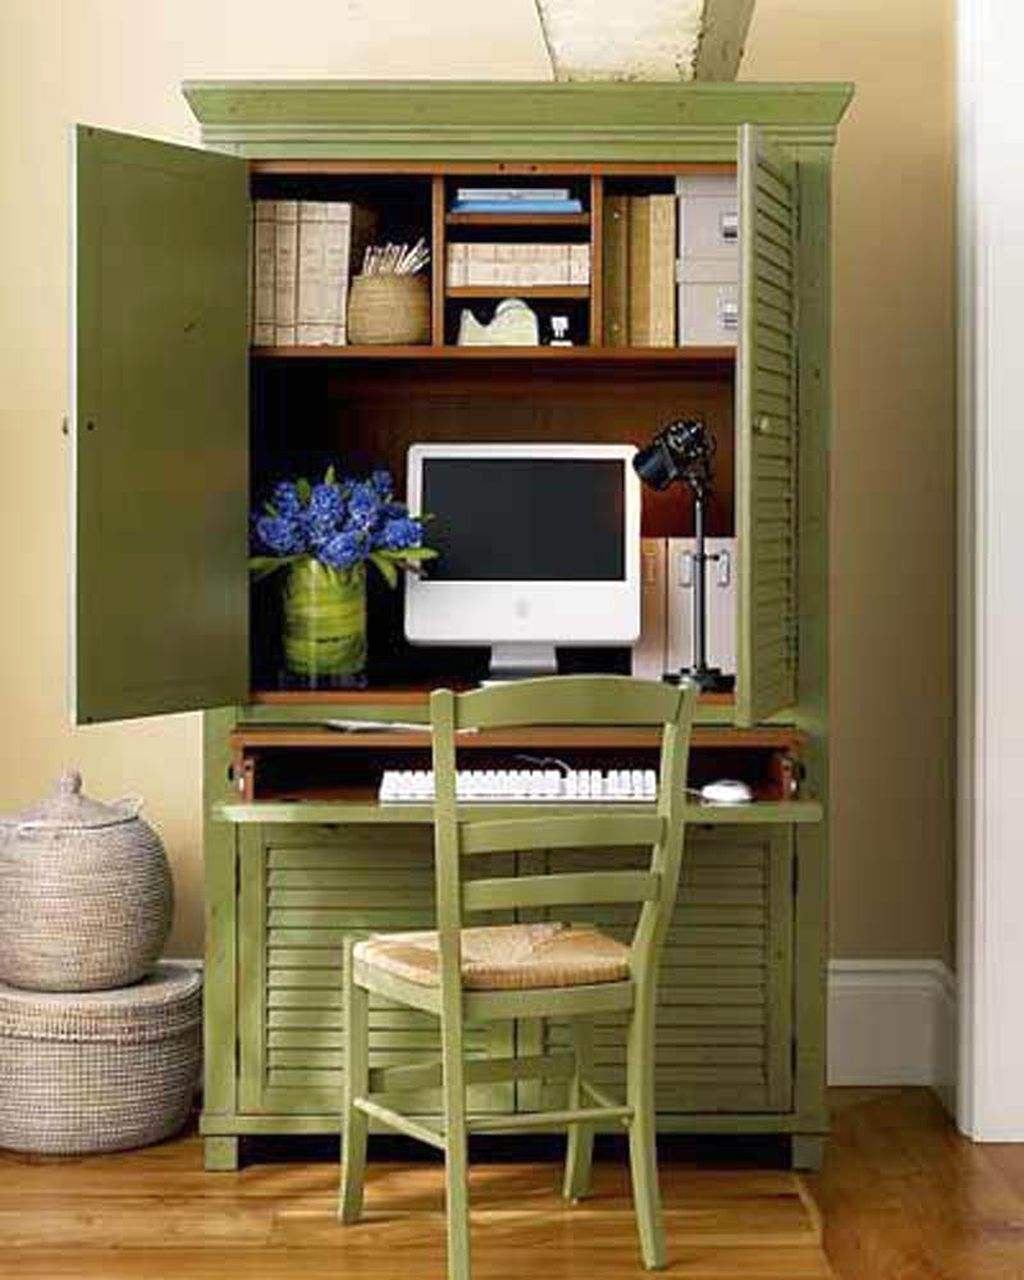 Green cupboard home office design ideas for small spaces for House design for small spaces